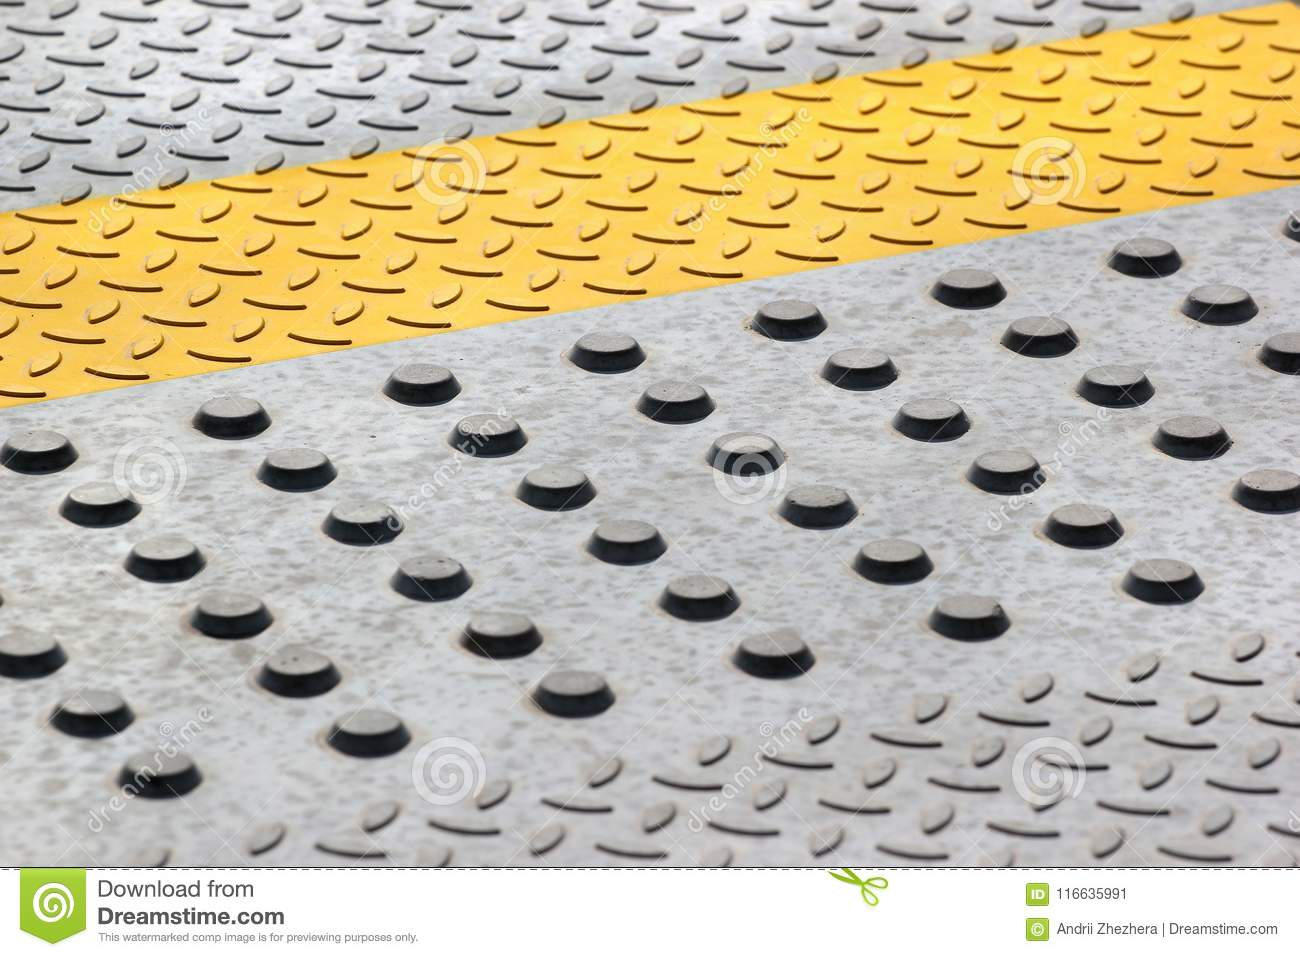 Antiskid Safety Bumps On Concrete Floor Stock Image Image Of - Anti skid flooring material